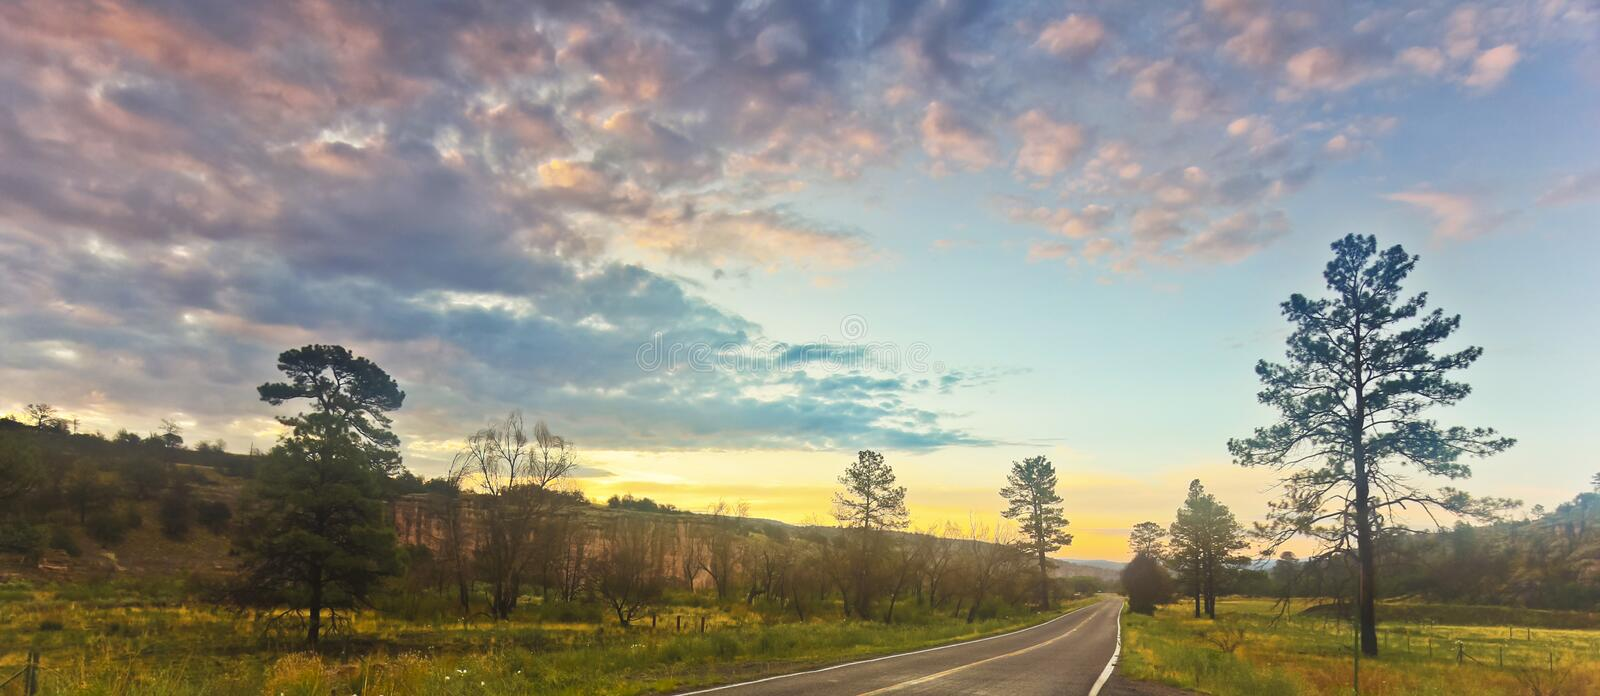 Download A Road In A Mounatin Valley At Sunrise Stock Image - Image: 33580463